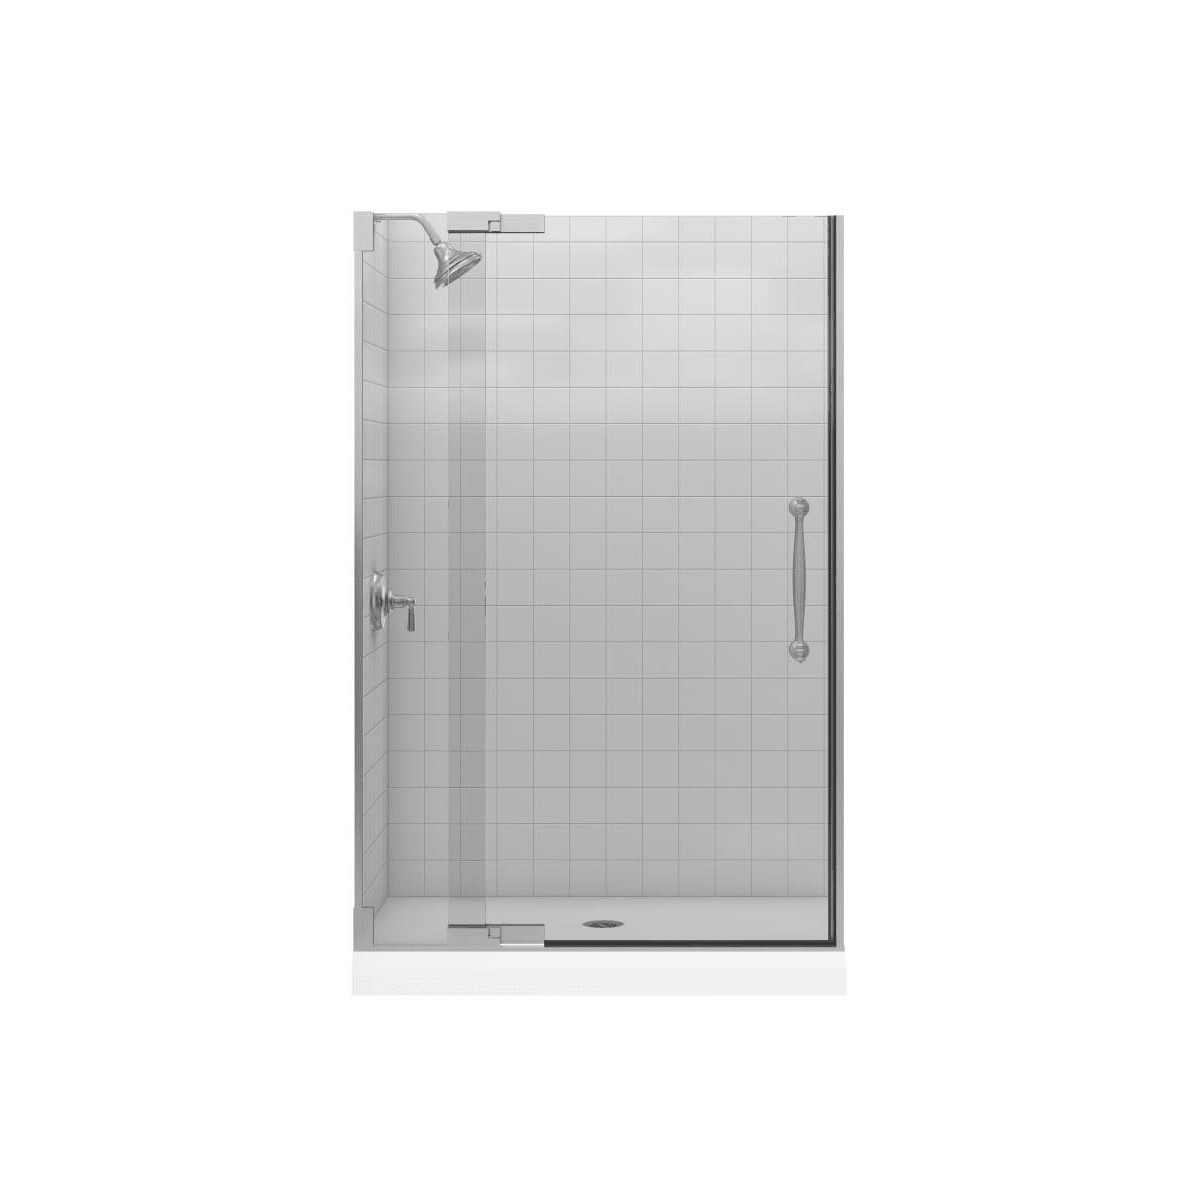 Kohler K 705740 L Bh Bright Brass Heavy Glass Pivot Shower